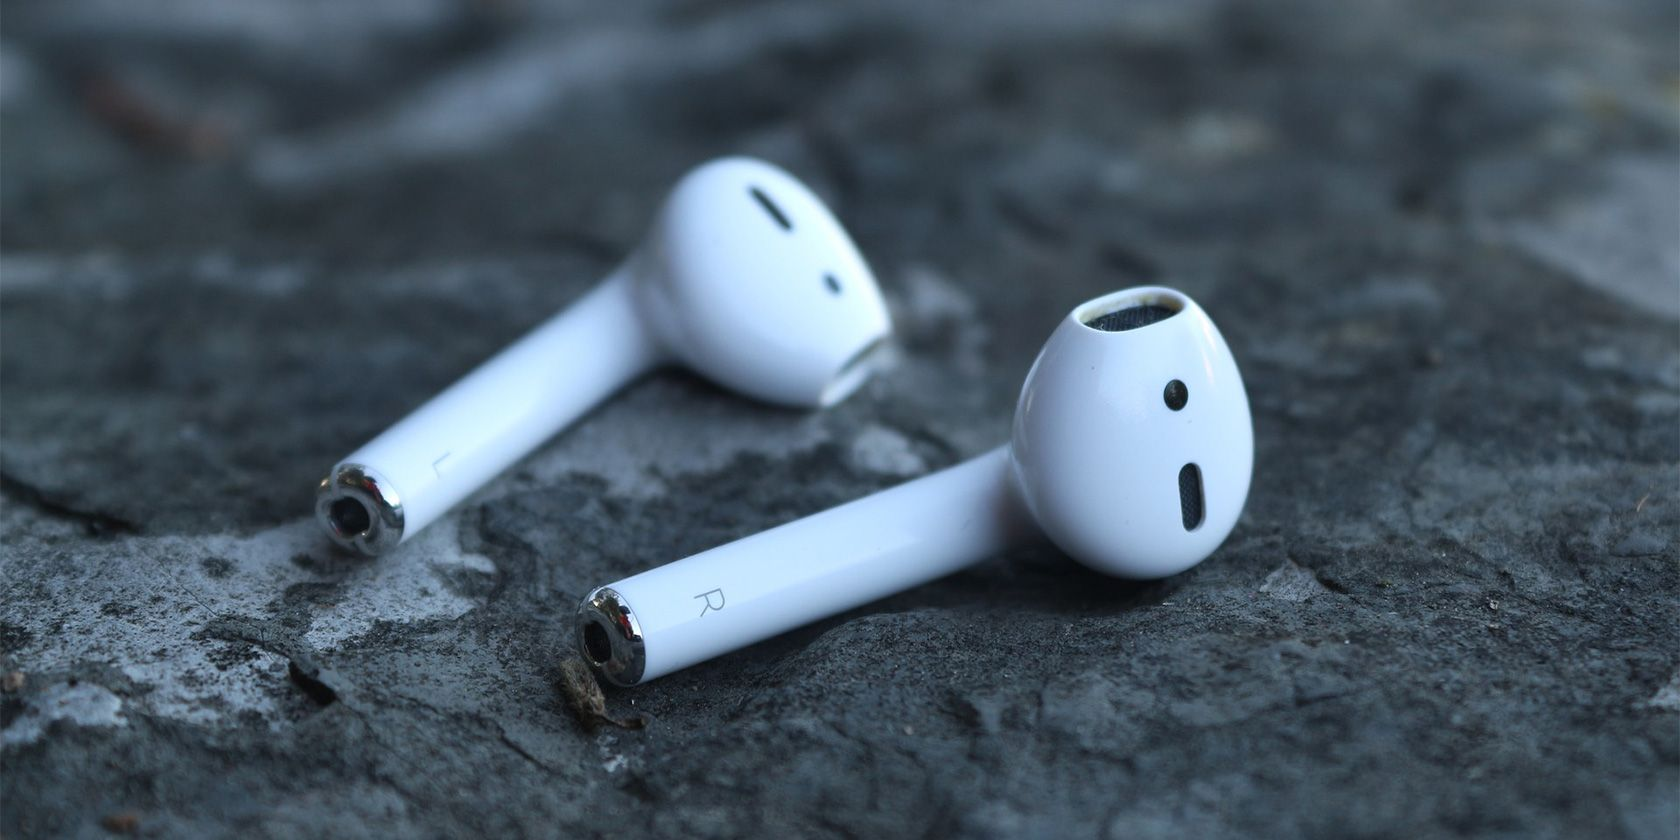 How to Update Your AirPods